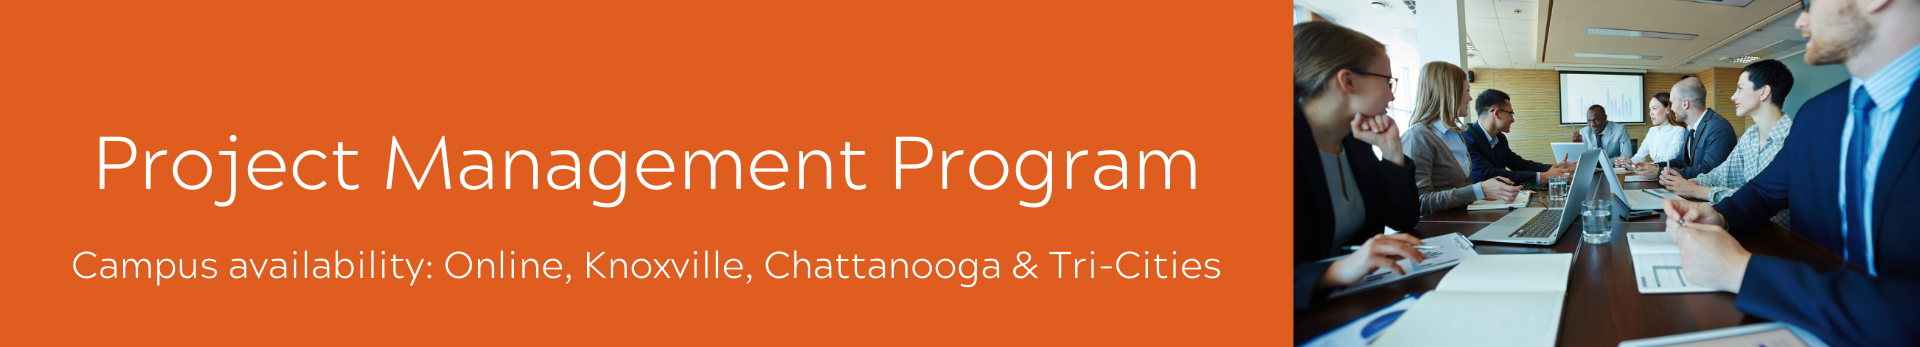 Project Management Program available Online